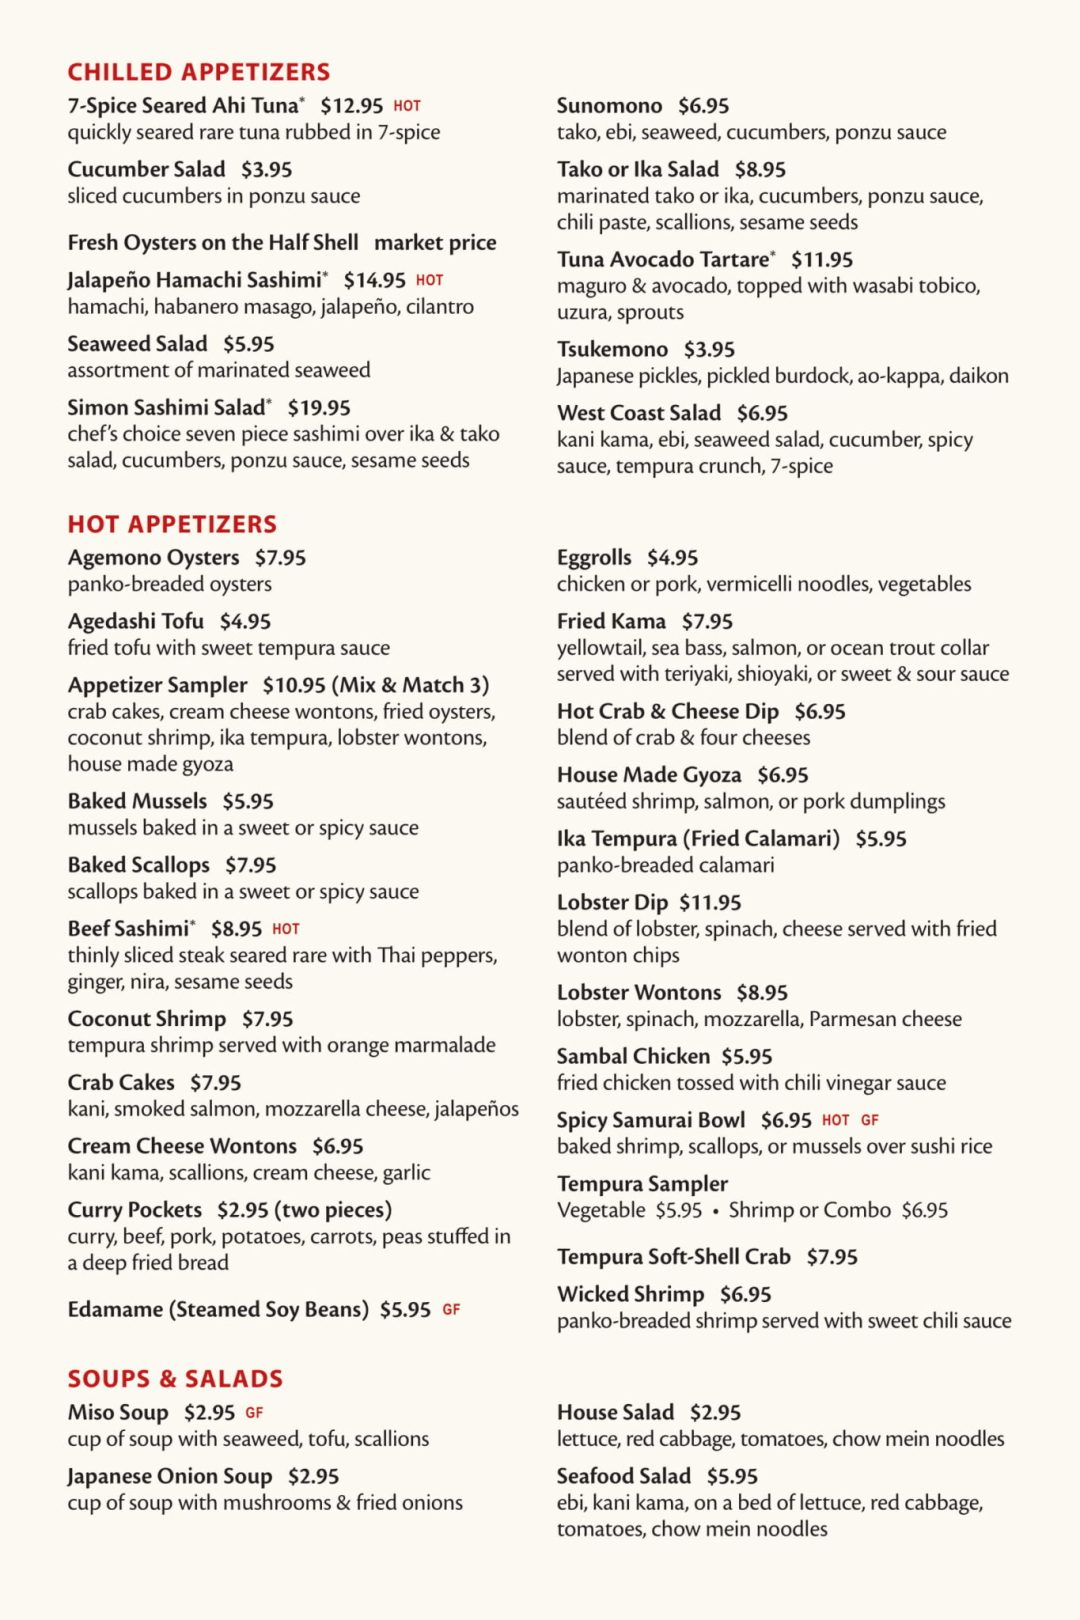 Fuji Sushi Bar Full Menu - Page 2